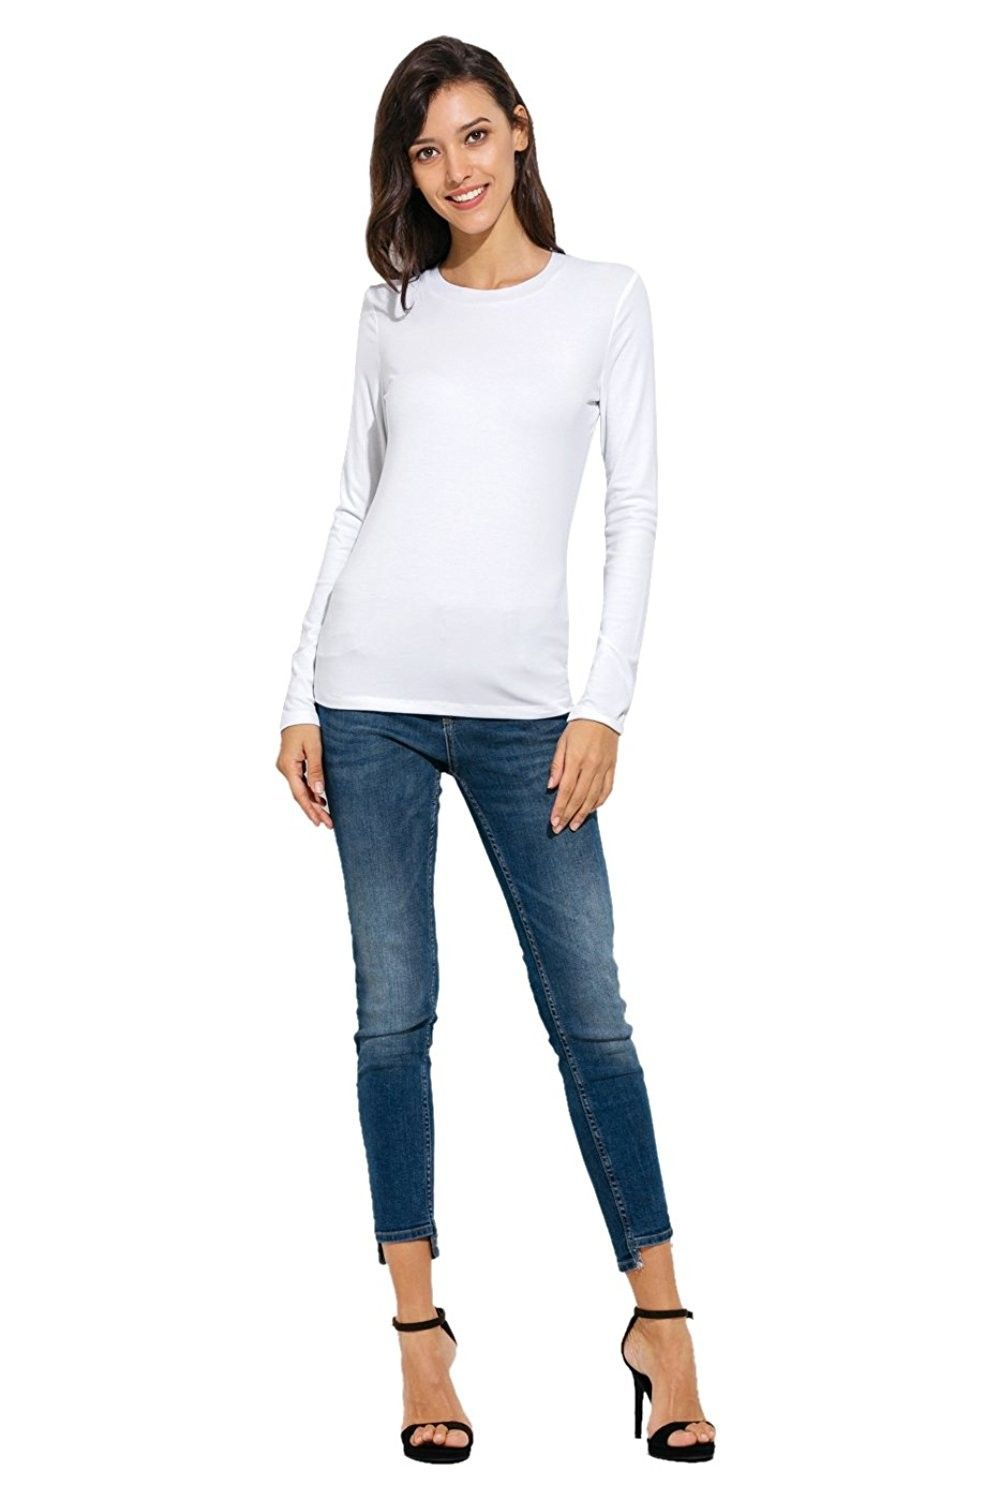 6dbc962c Women's Clothing, Tops & Tees, Henleys,Women's Basic Long Sleeve Crew Neck  Slim Fit Rayon Tees Shirts Top (XS-XL) - White - C91885OSIS8 #Clothing #Tops  ...